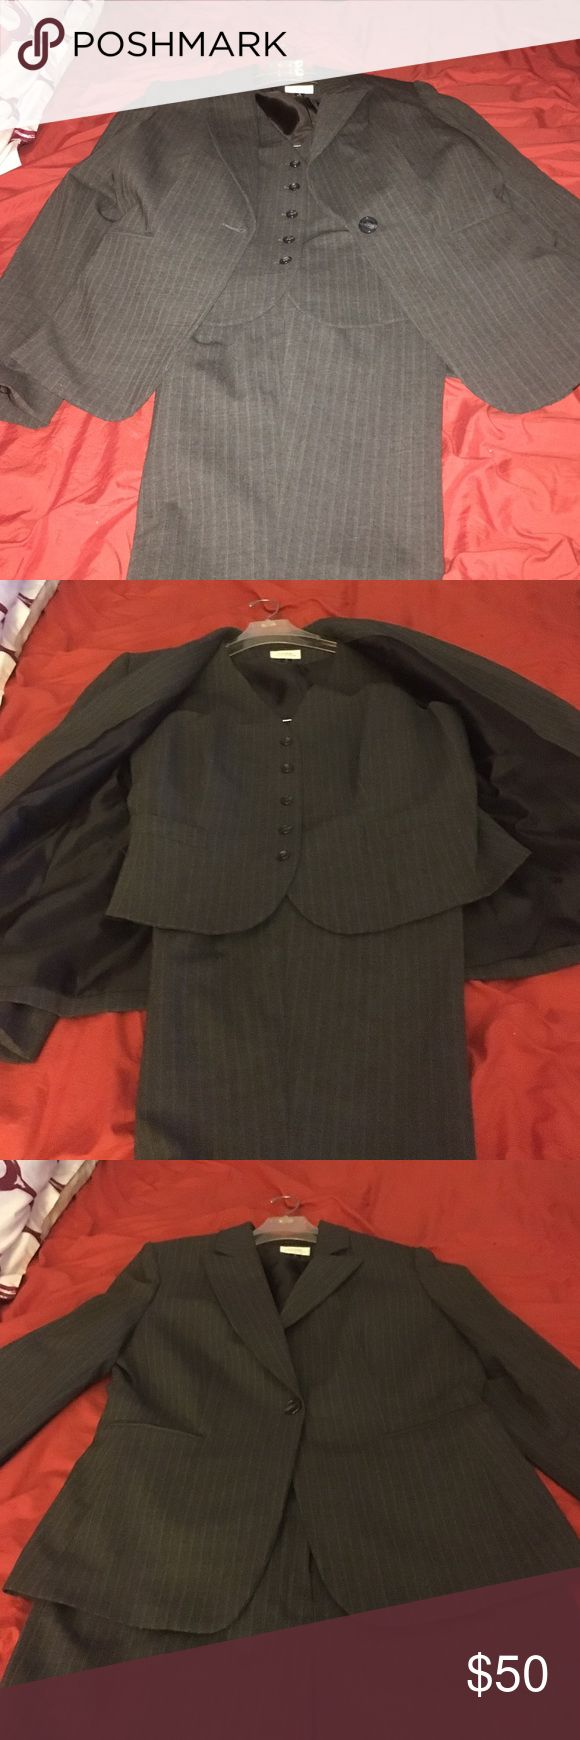 Gray pinstriped Ladies Business Suit Gray Pinstriped Ladies vested Business Suit by TAHARI Other